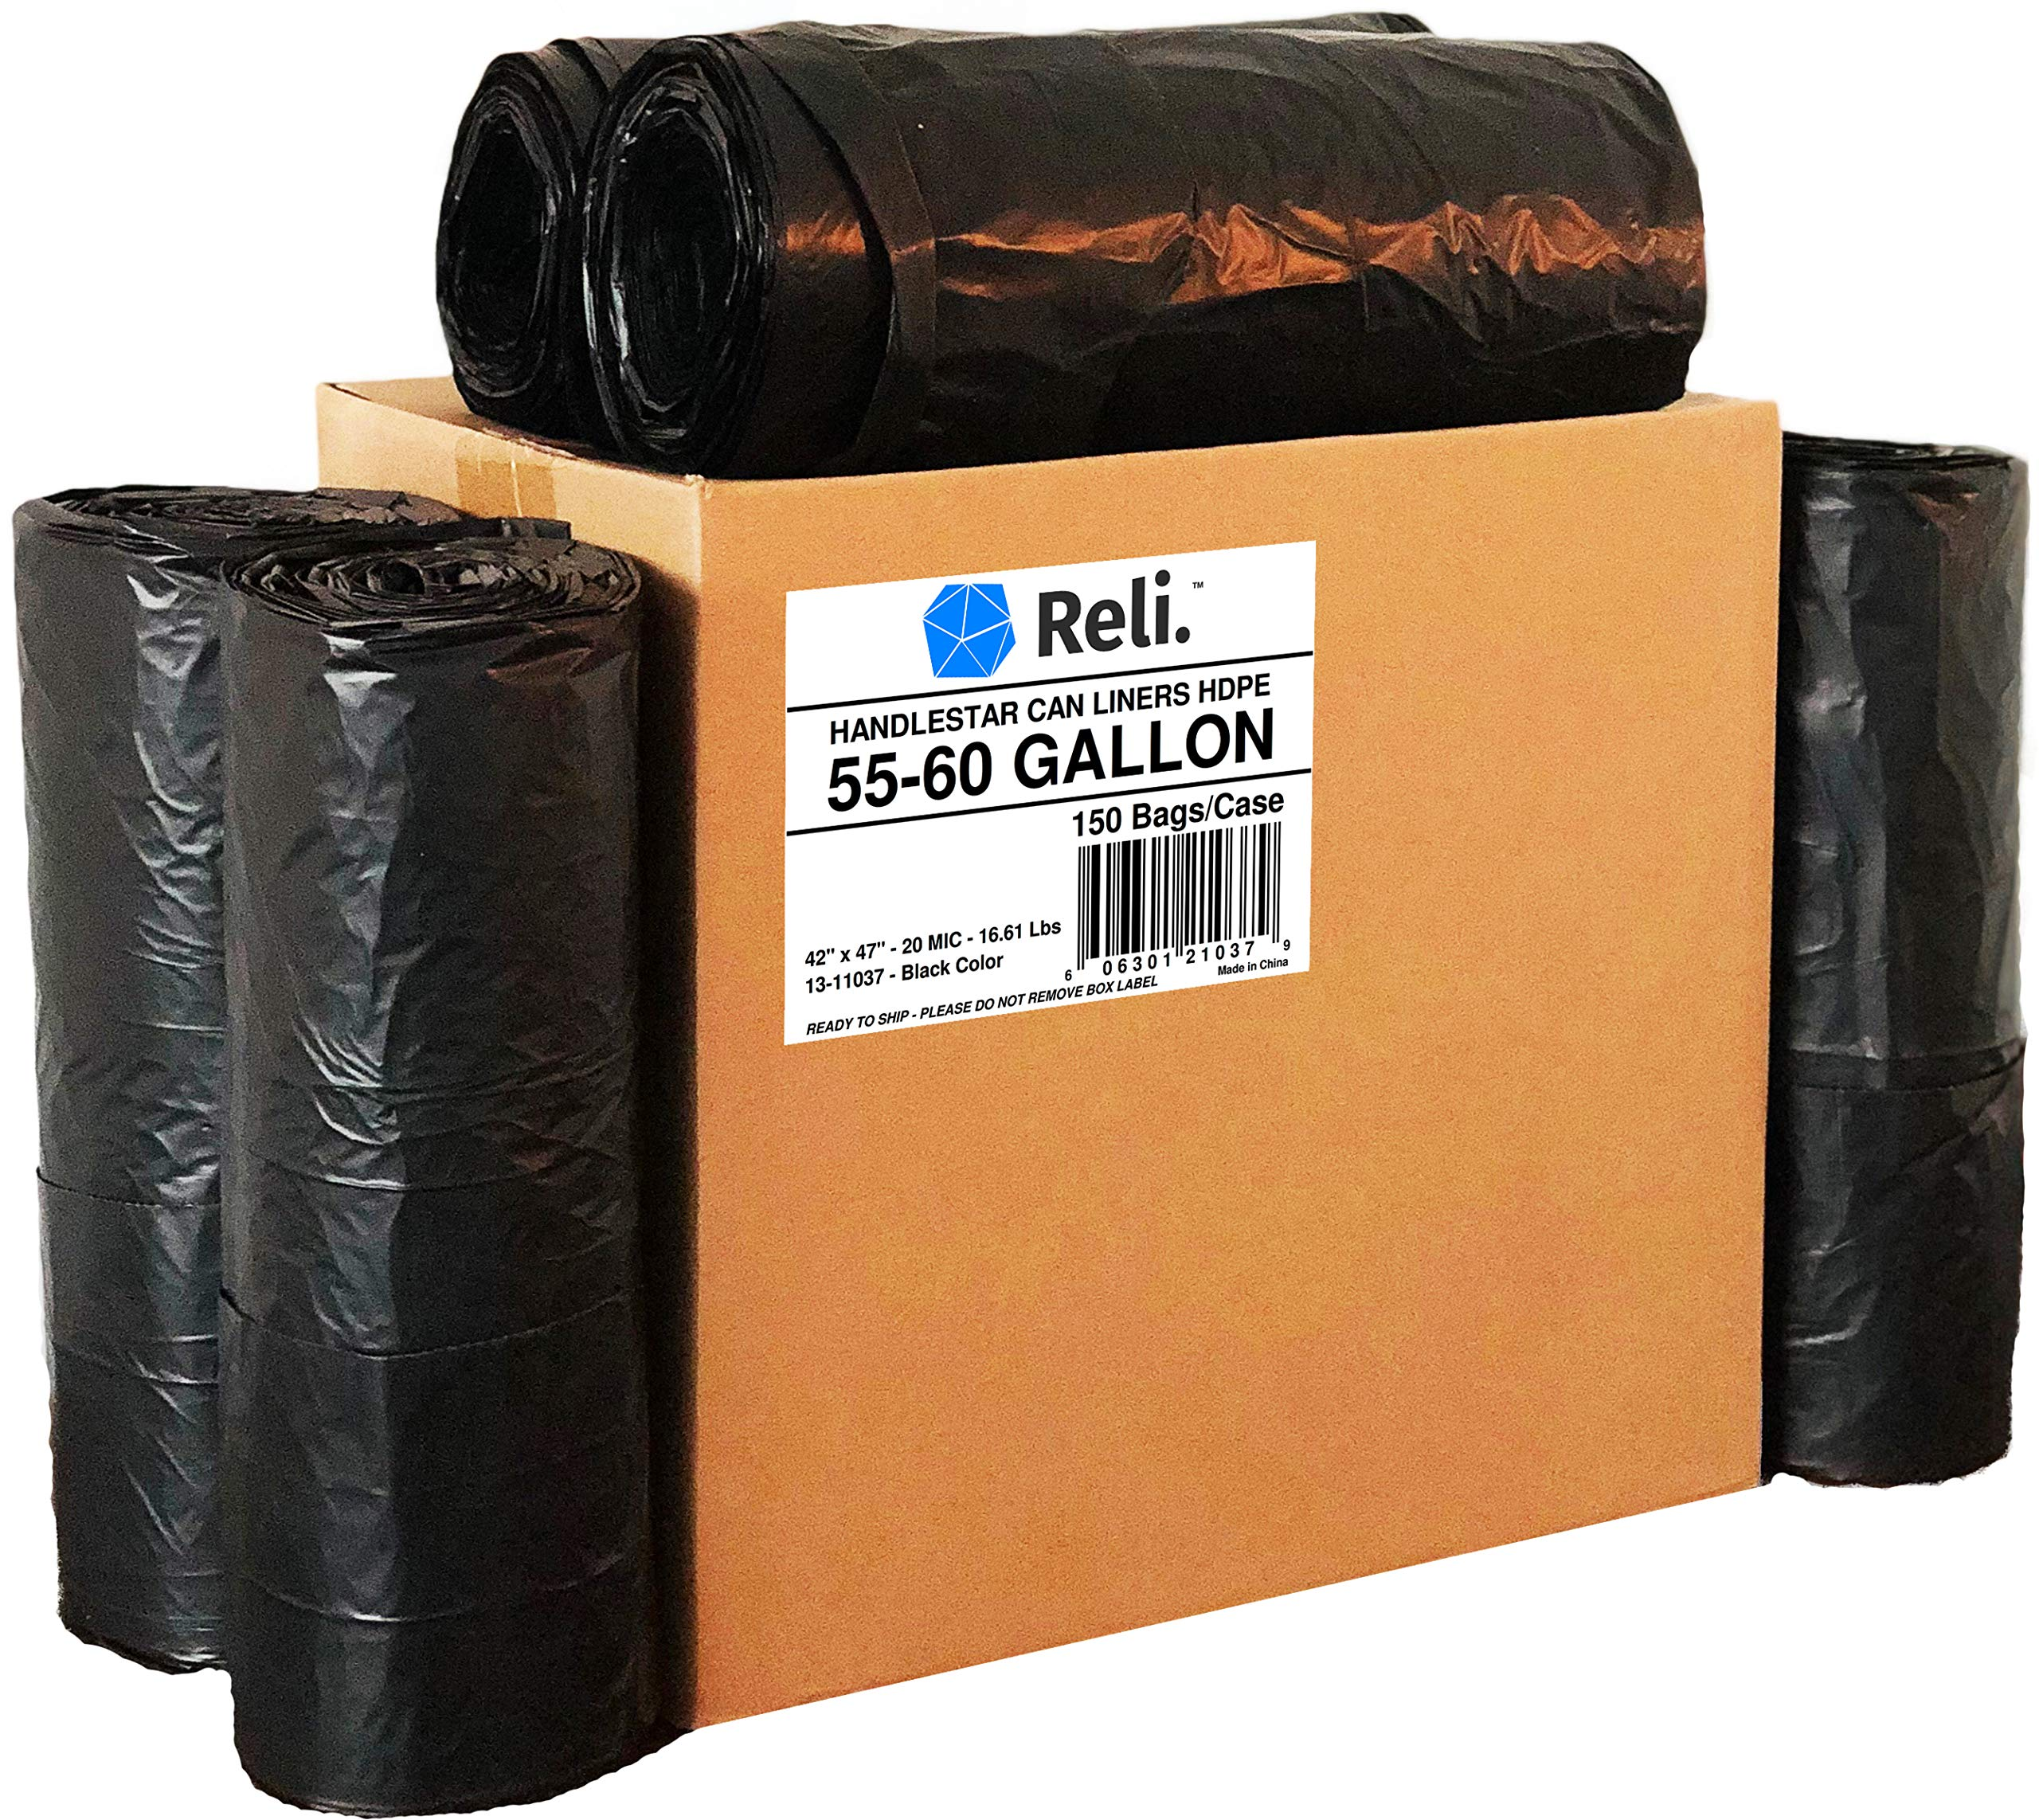 Reli. Trash Bags w/Handles (55-60 Gallon) (150 Count), Double-Ply HandleStar Garbage Bags (Black), Handle Tie Can Liners with 55 Gallon (55 Gal) to 60 Gallon (60 Gal) Capacity